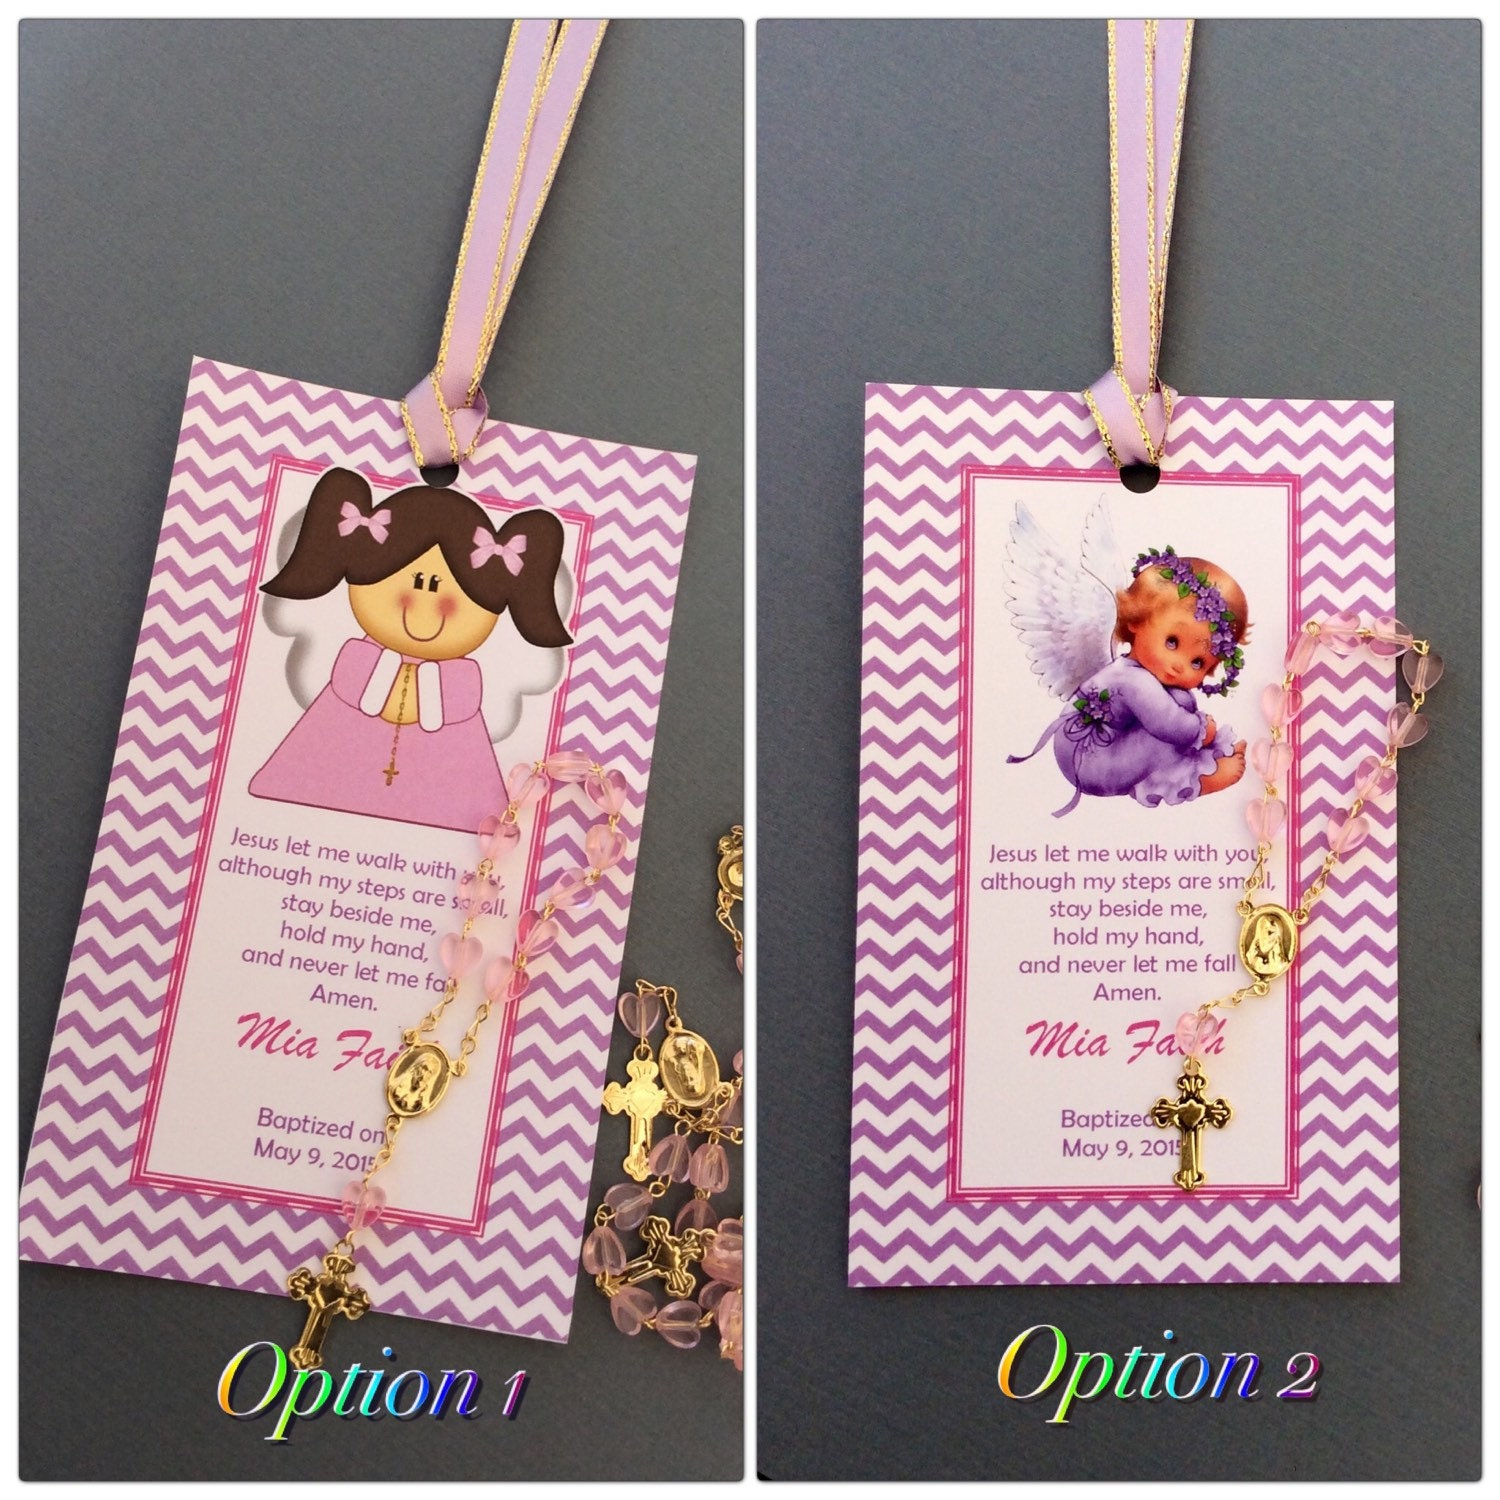 12 baptism favors with mini rosaries-girl Baptism favors- Christening  Baptism favor-baptism favors- purple baptism favor